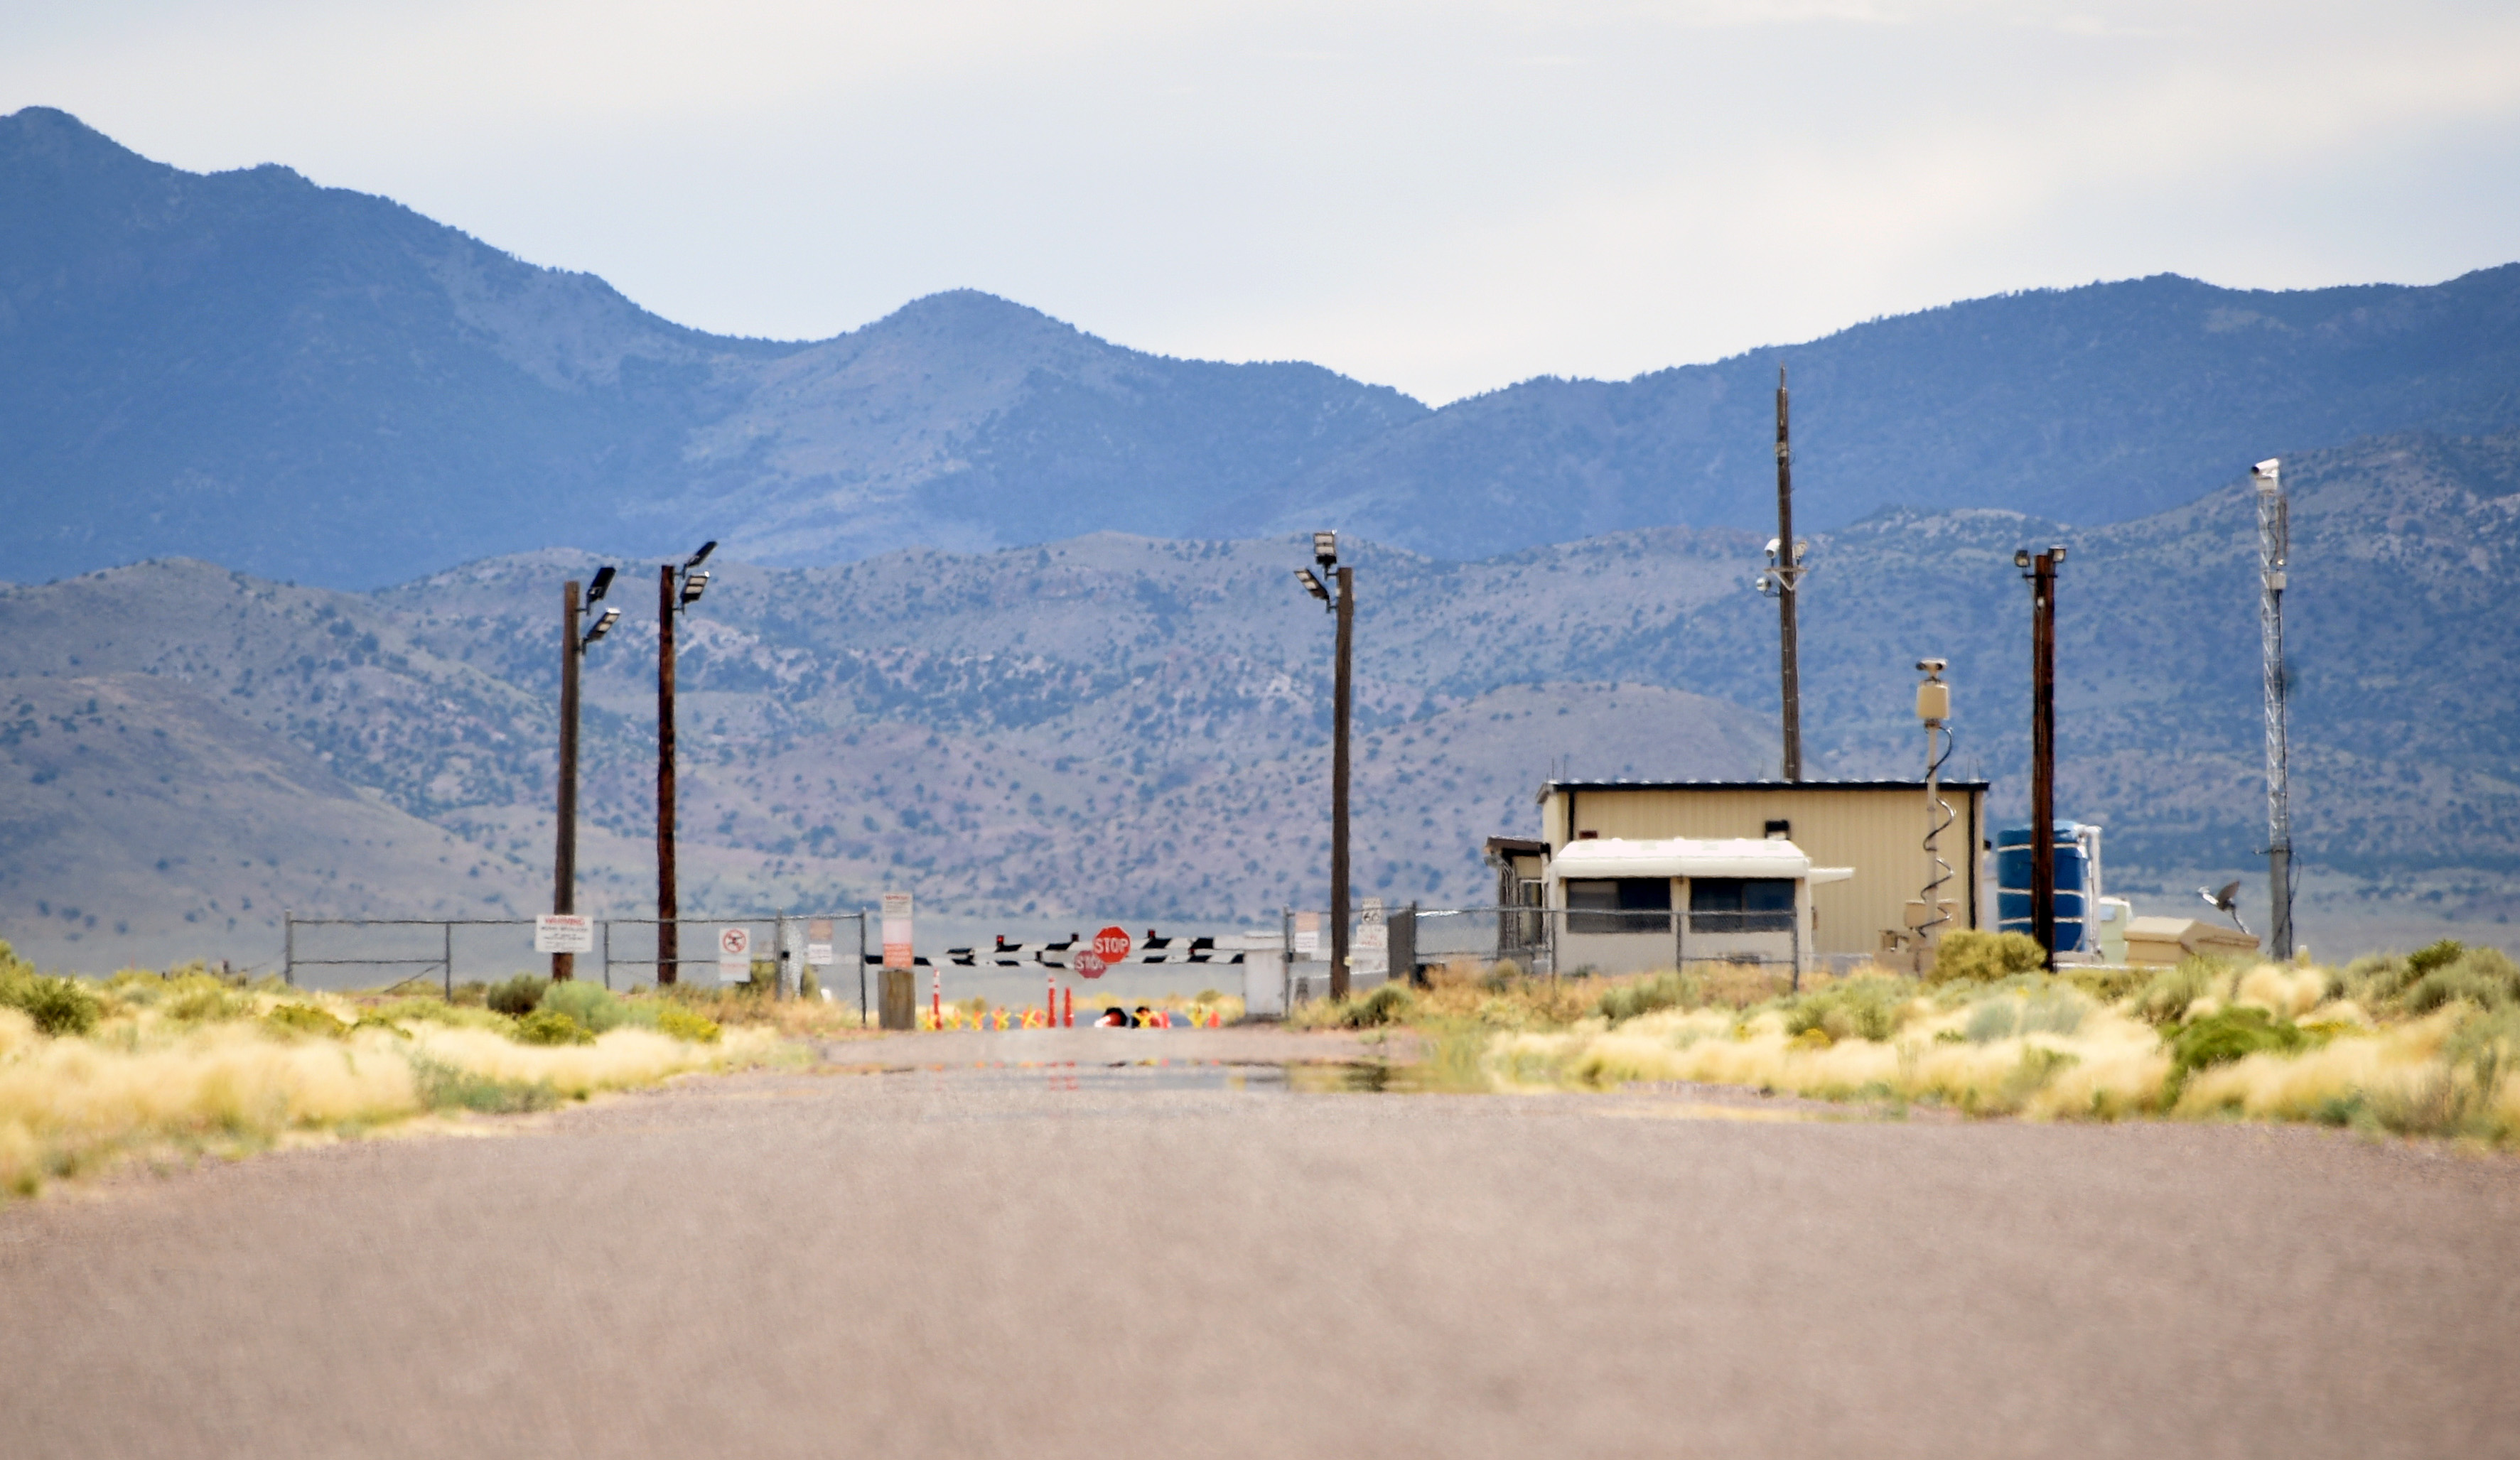 The secret history of Area 51, explained by an expert